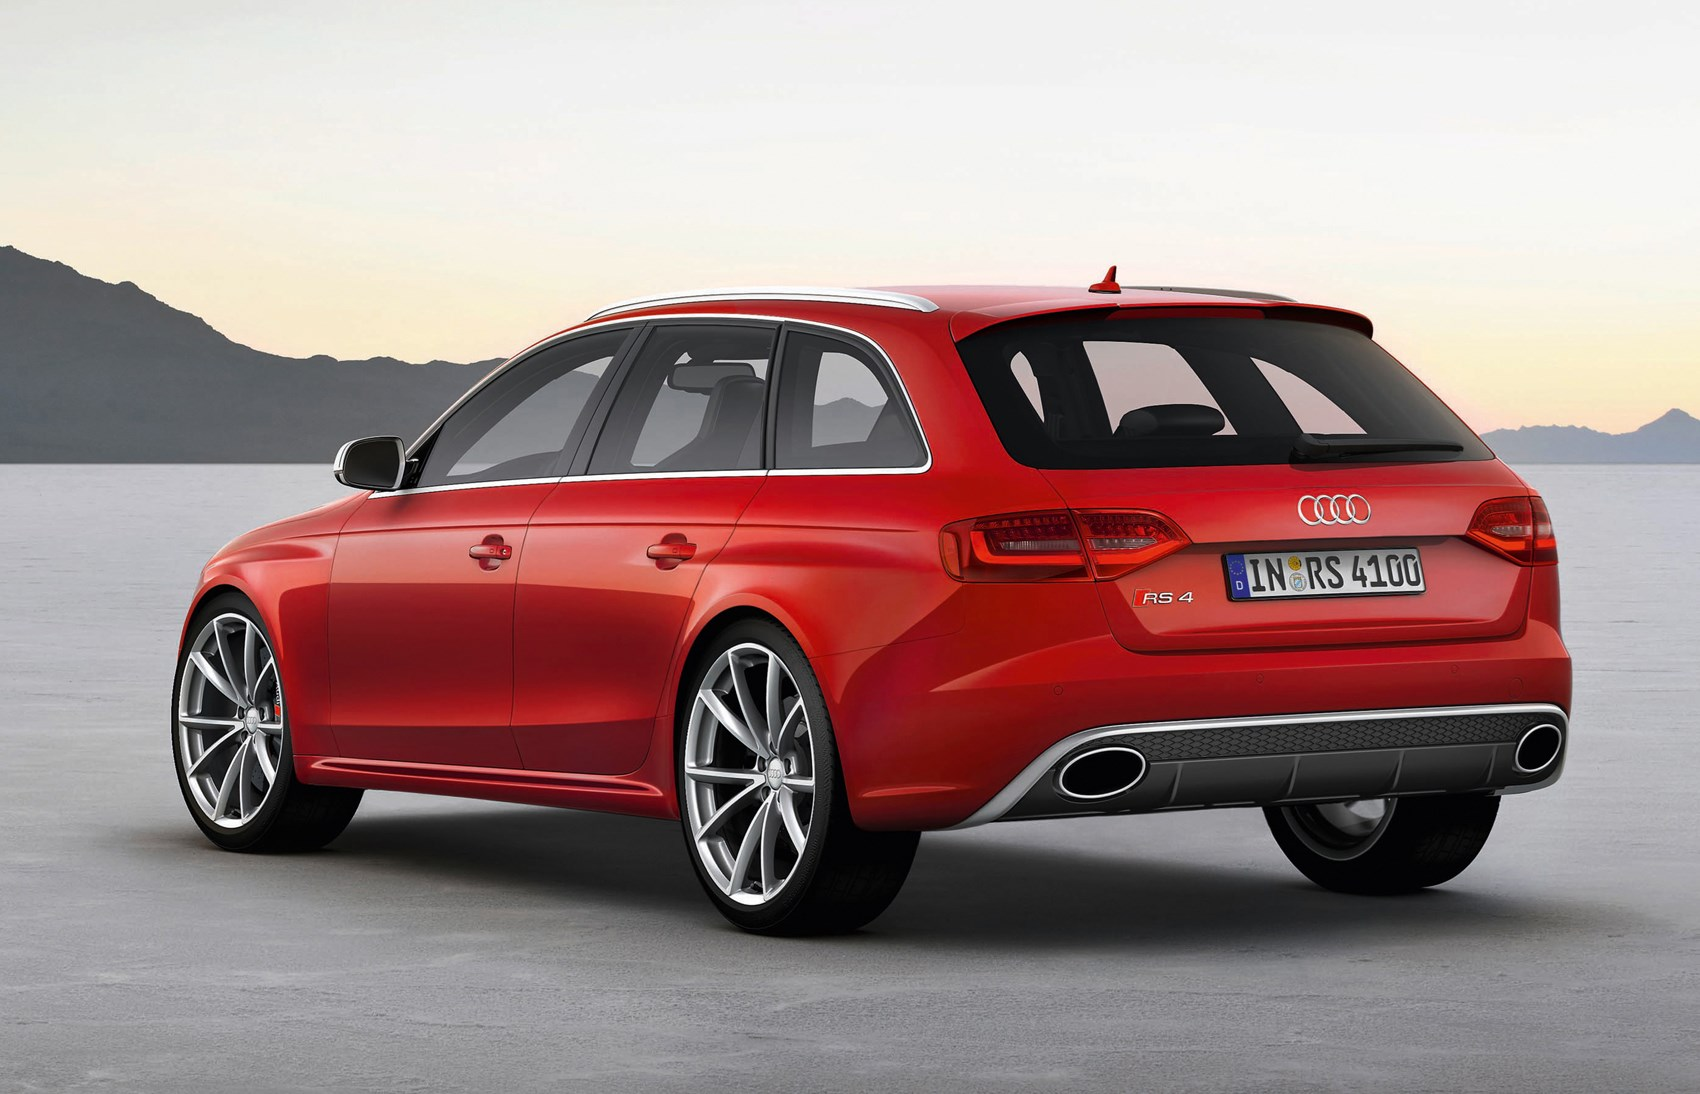 audi a4 rs4 avant review 2012 2015 parkers. Black Bedroom Furniture Sets. Home Design Ideas